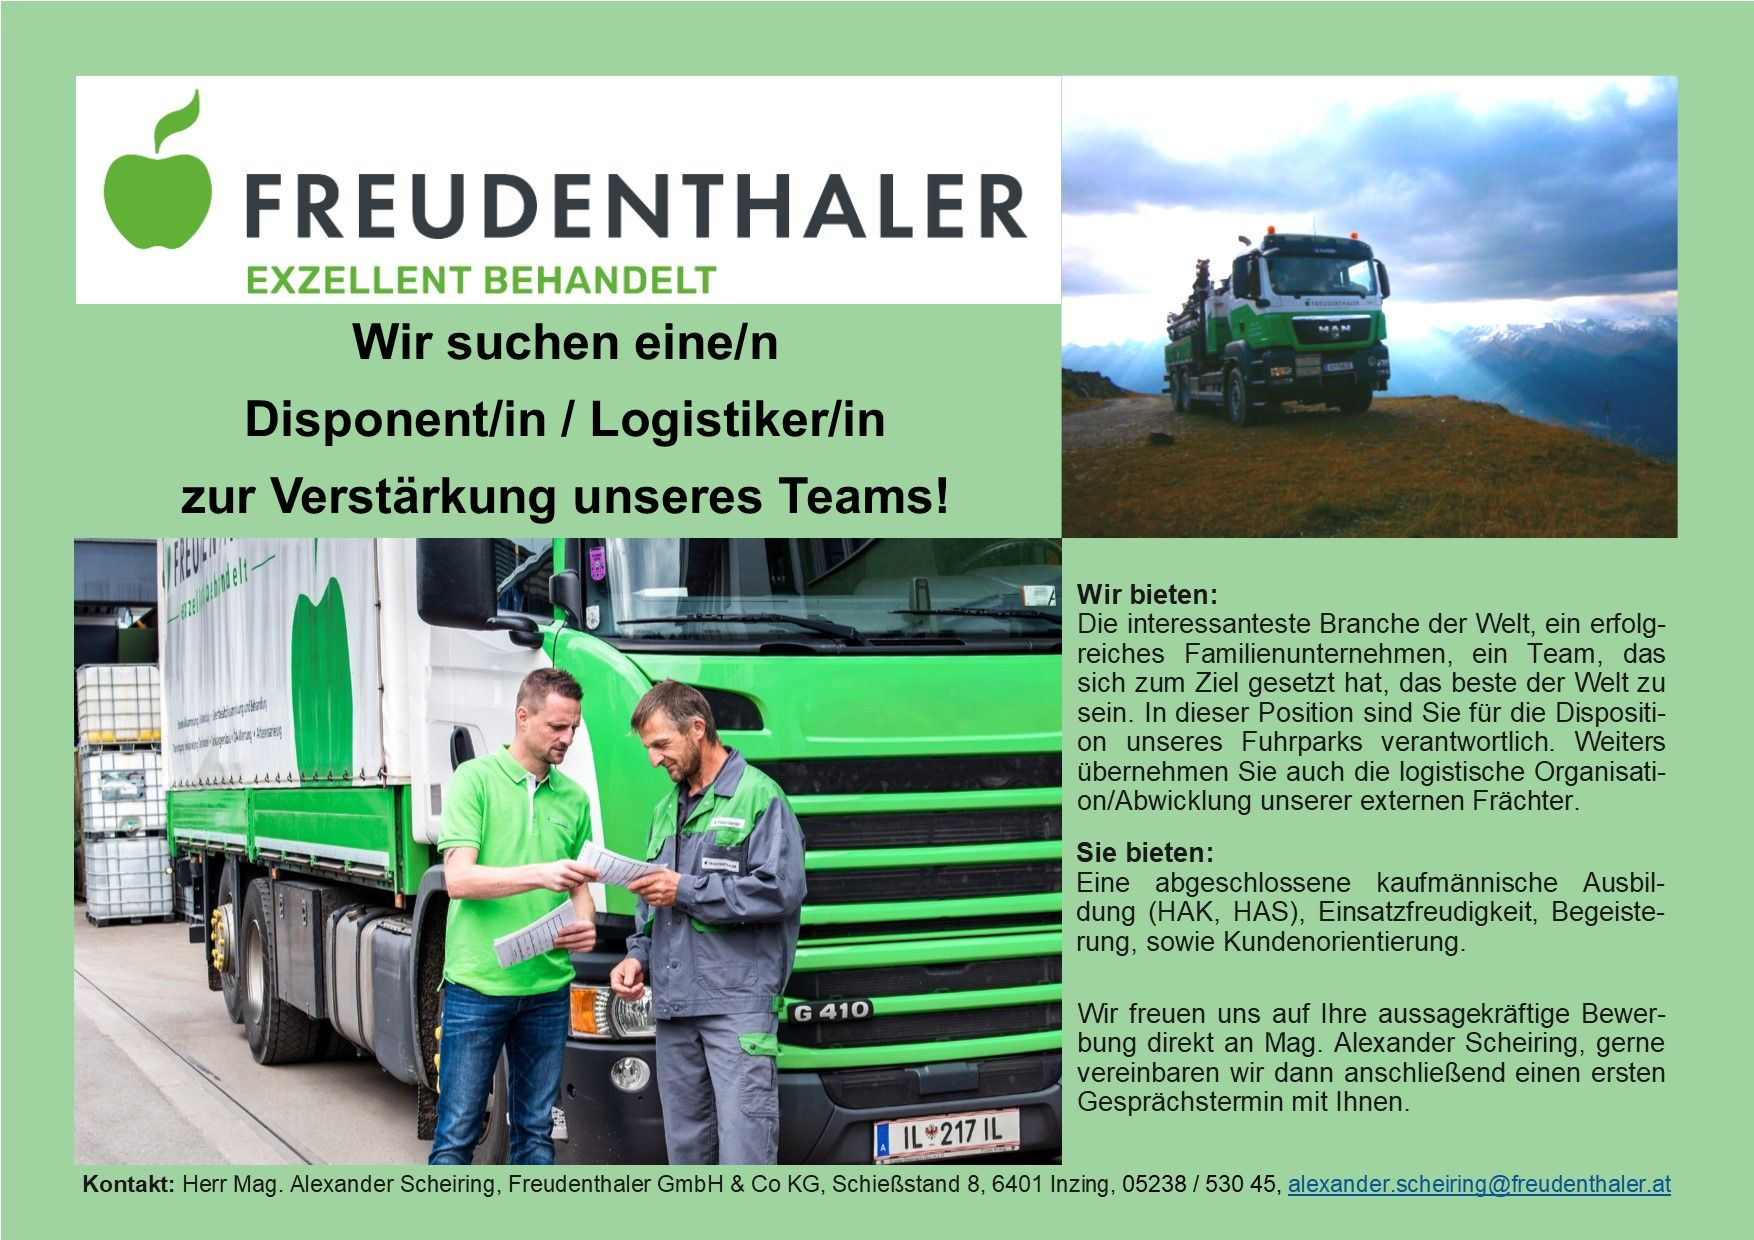 Disponent/in / Logistiker/in